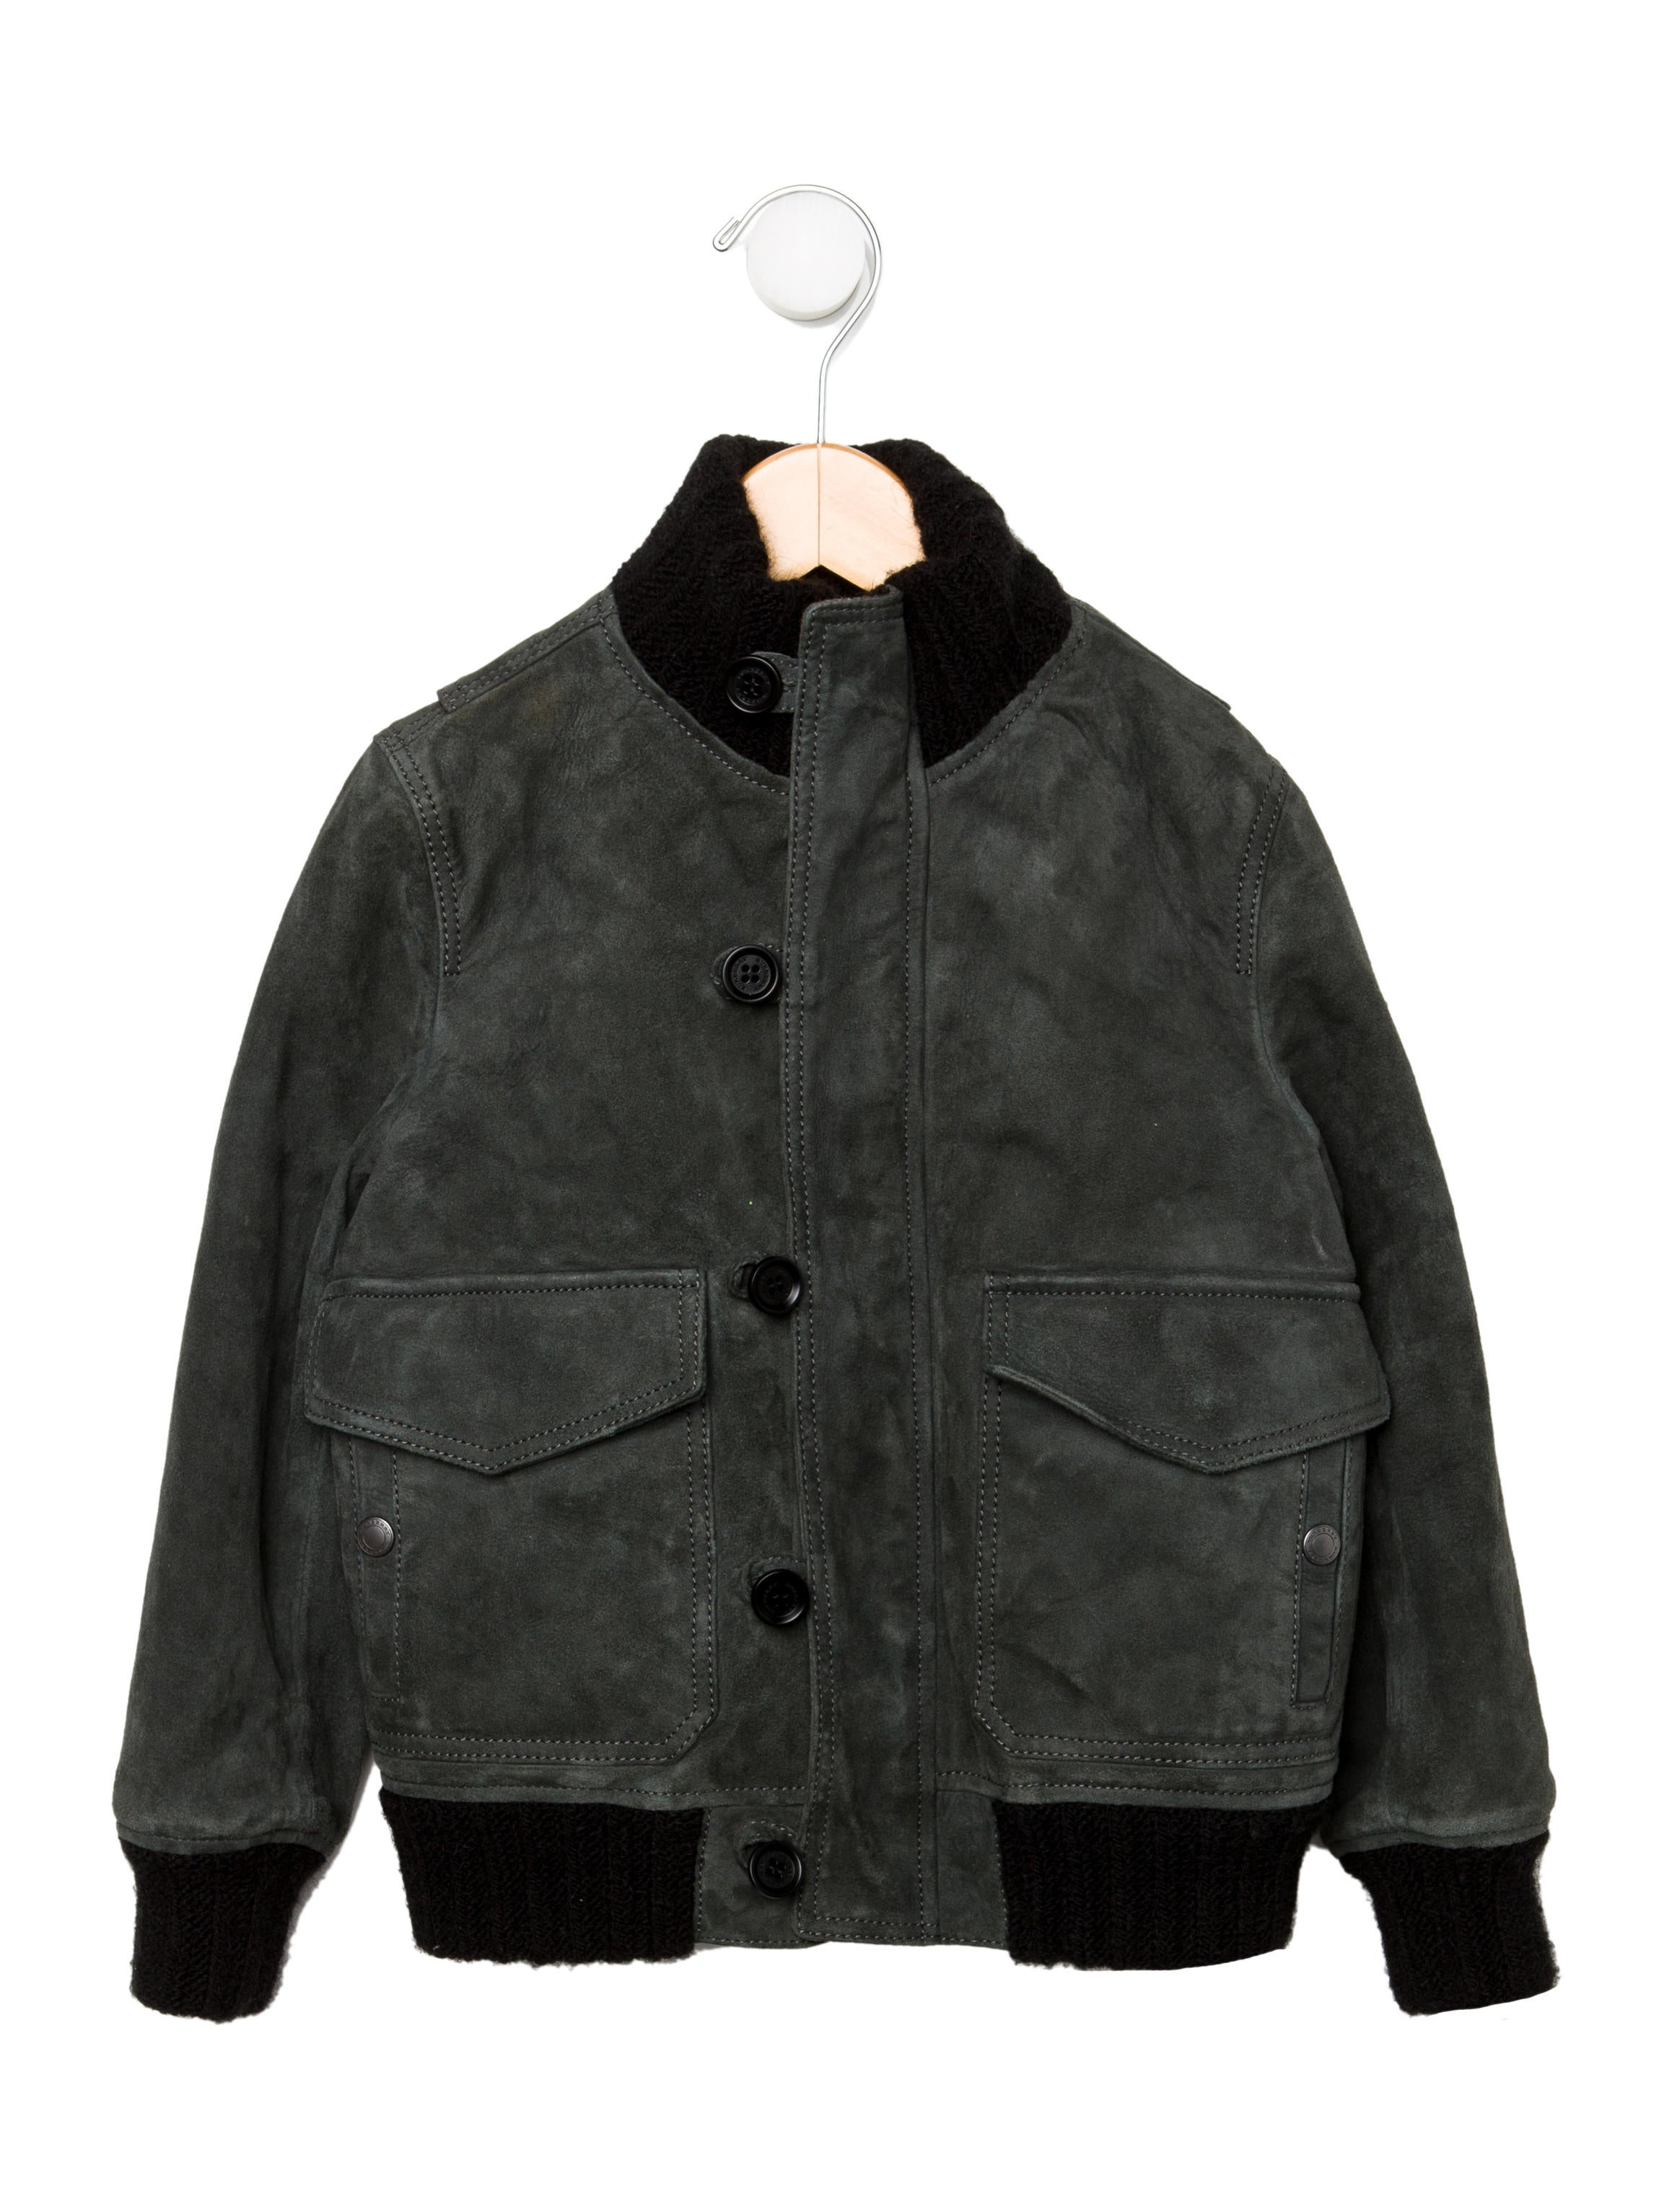 Shop ralph lauren jacket at deletzloads.tk Free Shipping and Free Returns for Loyallists or Any Order Over $! Polo Ralph Lauren Boys' Fleece Jacket Polo Ralph Lauren Boys' Suede Trucker Jacket.